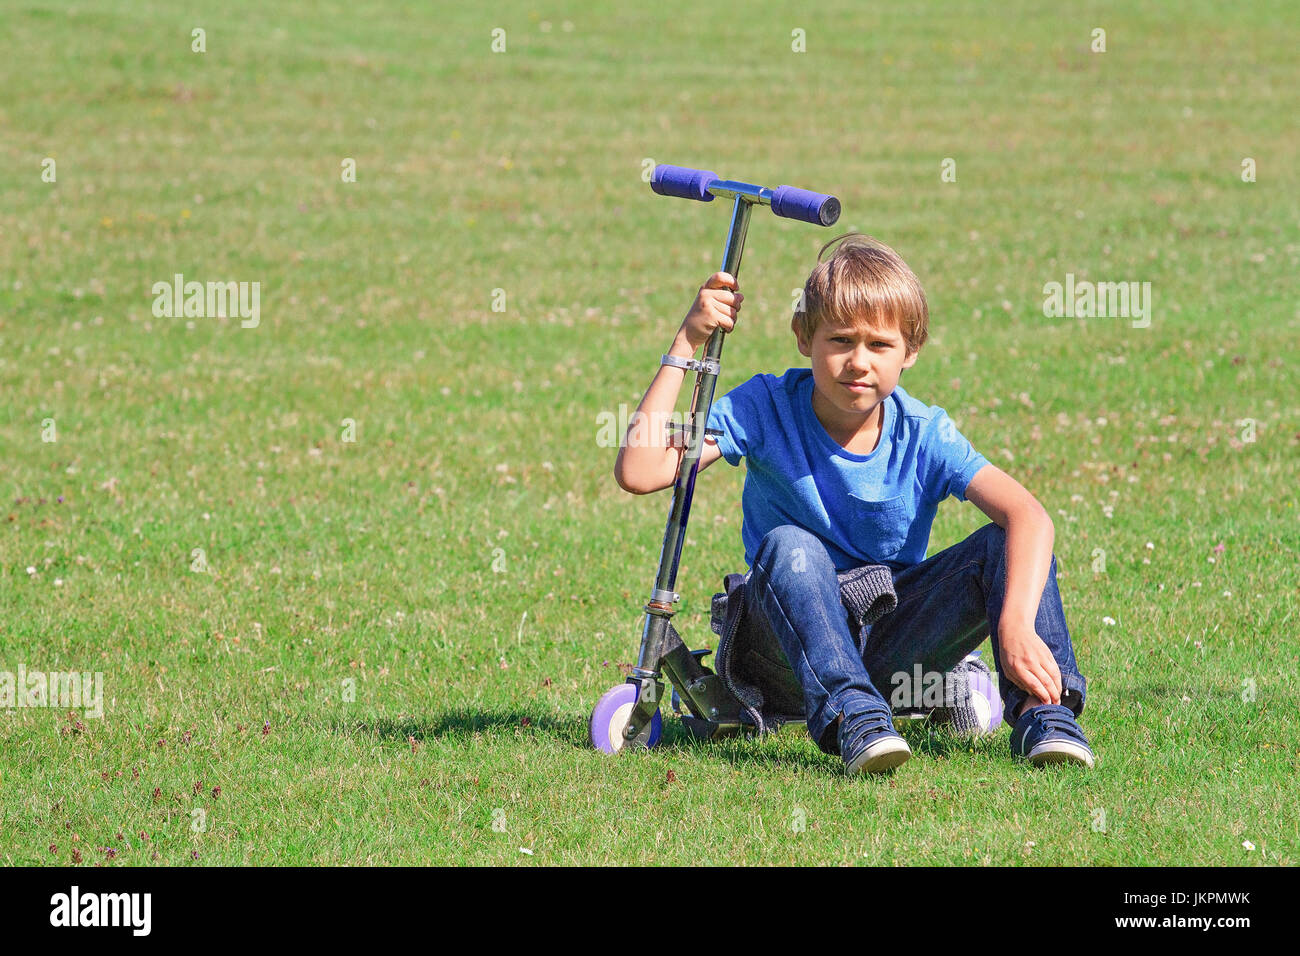 Boy sitting on a scooter in the park - Stock Image